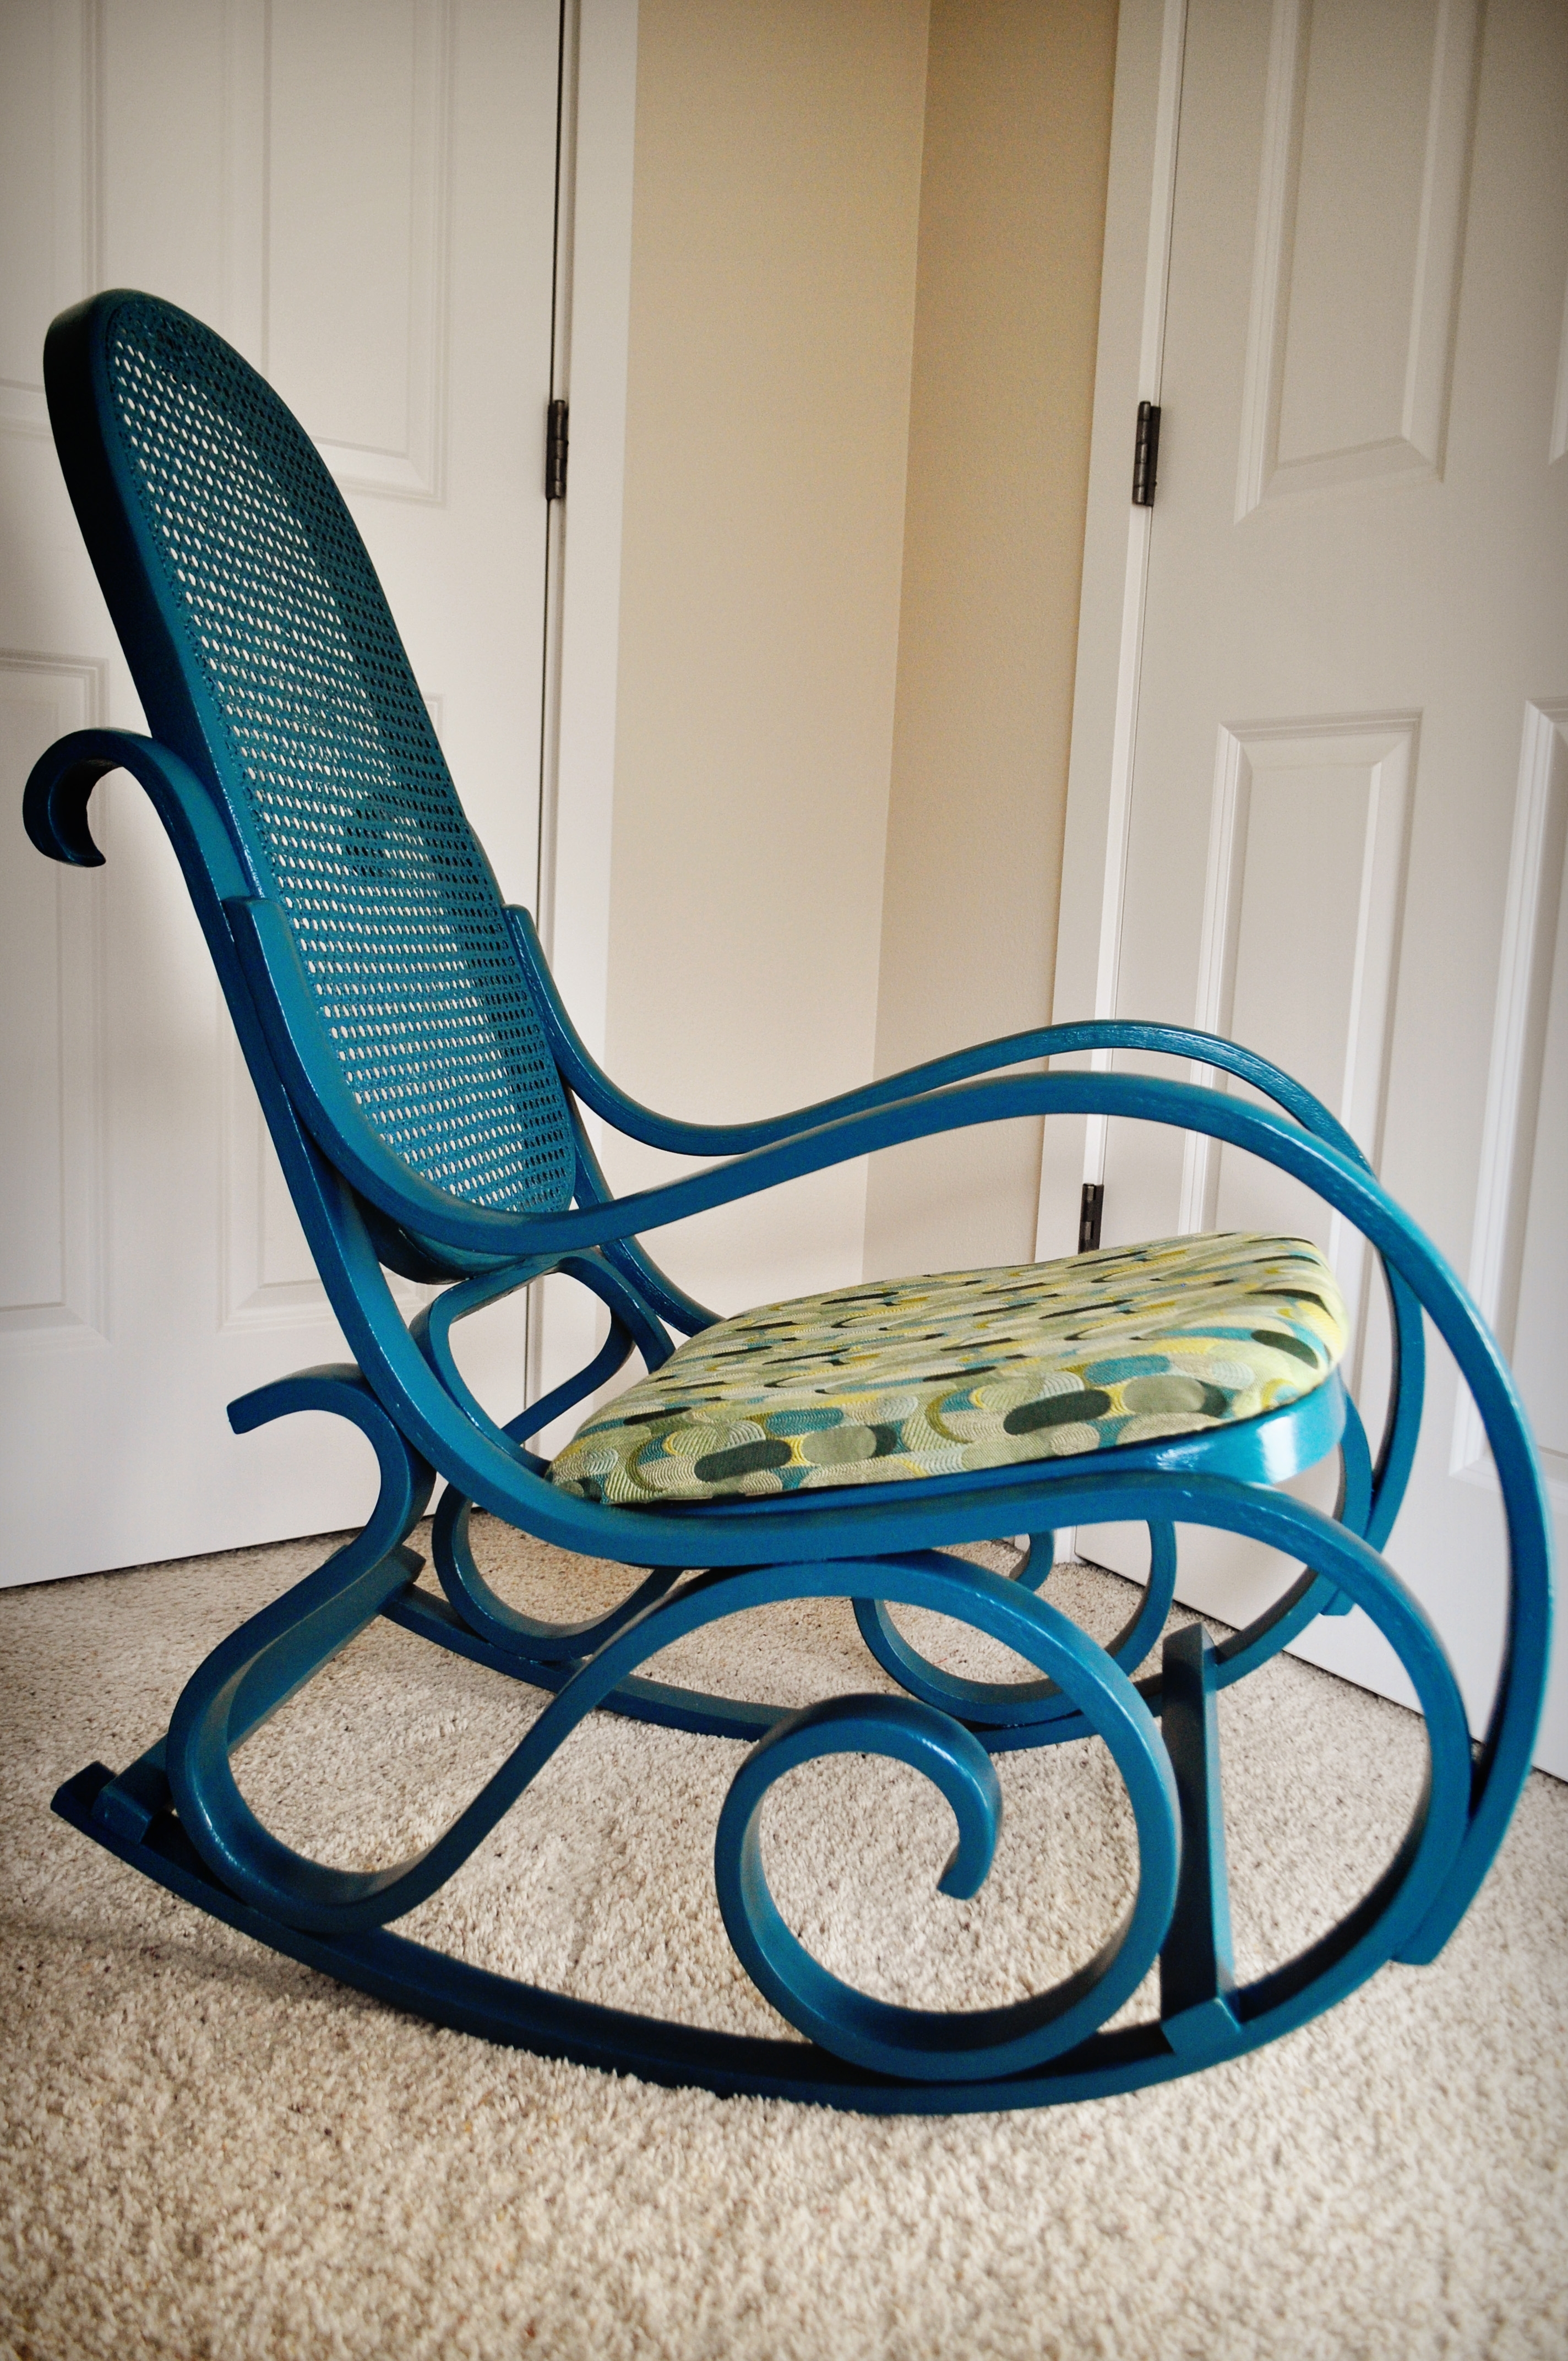 Vintage Wicker Rocking Chairs Inside Famous Furniture: Antique Wicker Rocking Chair Design (View 5 of 15)